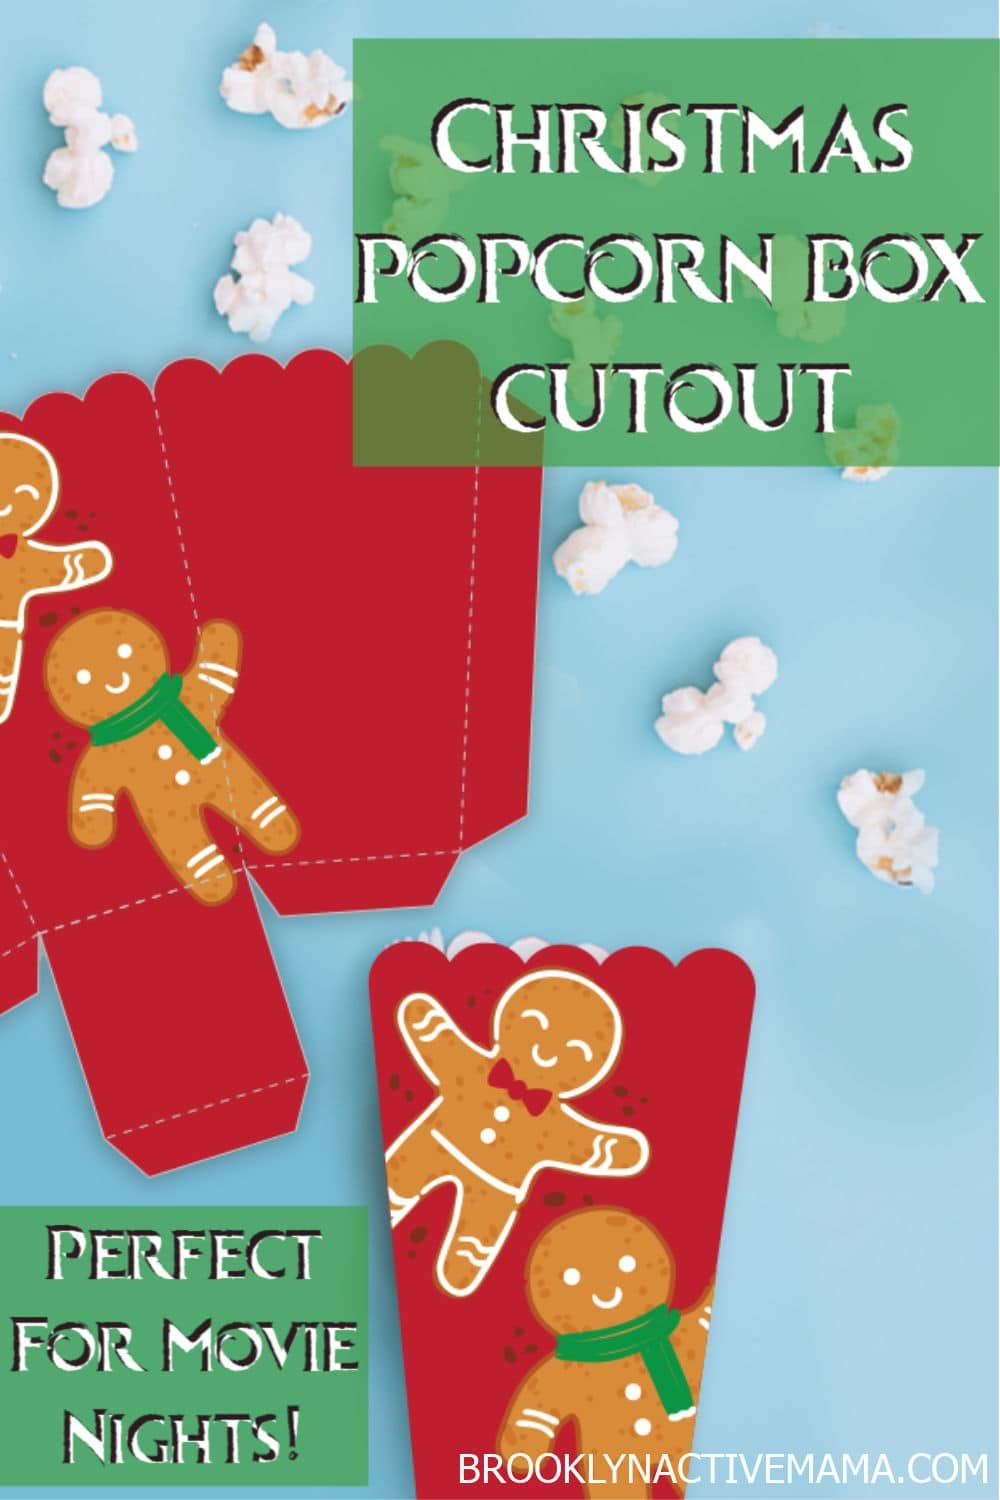 10 of the Best Christmas Movies for Kids on Netflix + A DIY Popcorn Box (With images) | Kids ...